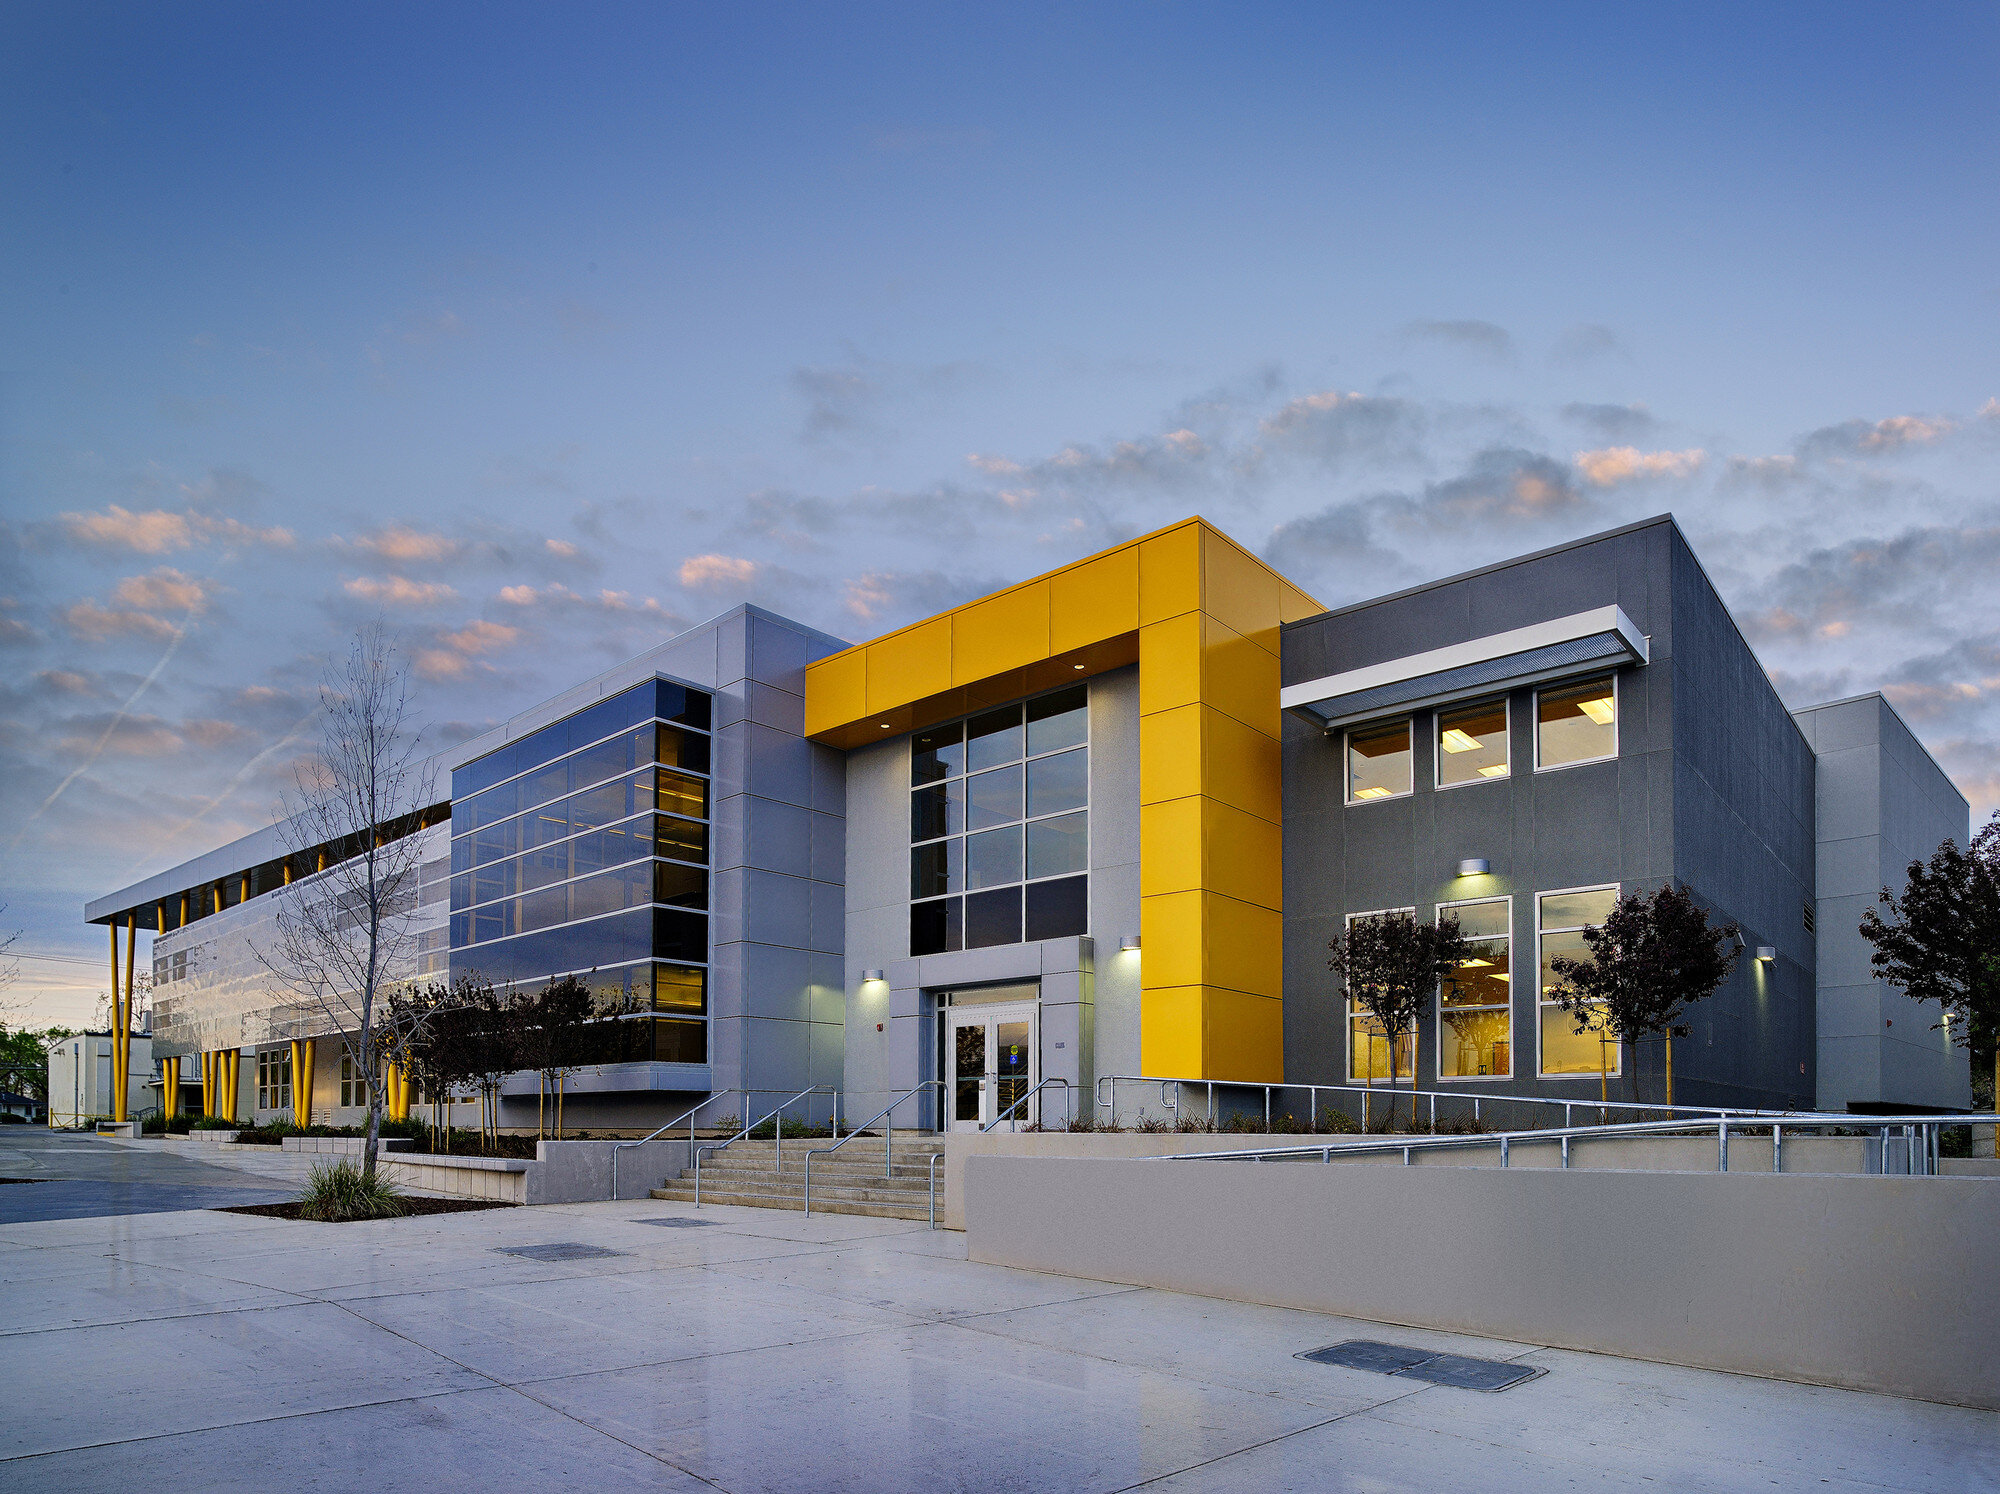 Independent Municipal Advisor - Keygent provides strategic and technical municipal advisory services to California school and community college districts.